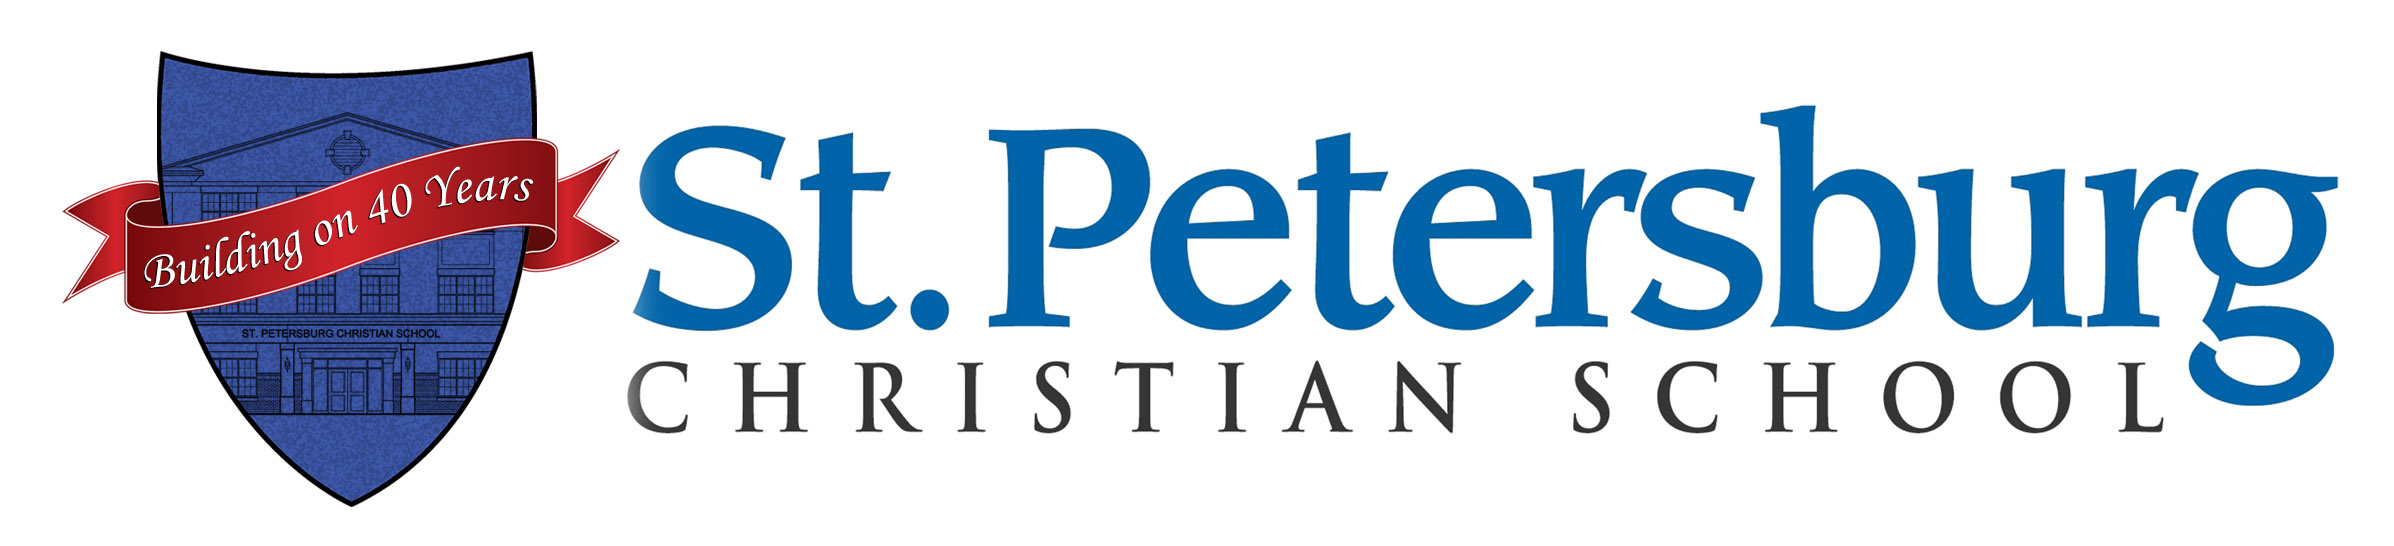 saint petersburg christian personals I am looking for a friend to share quality time with, whether it be a walk on the beach, a concert (love all kinds of music), or a fun day at disney i i love this jour.